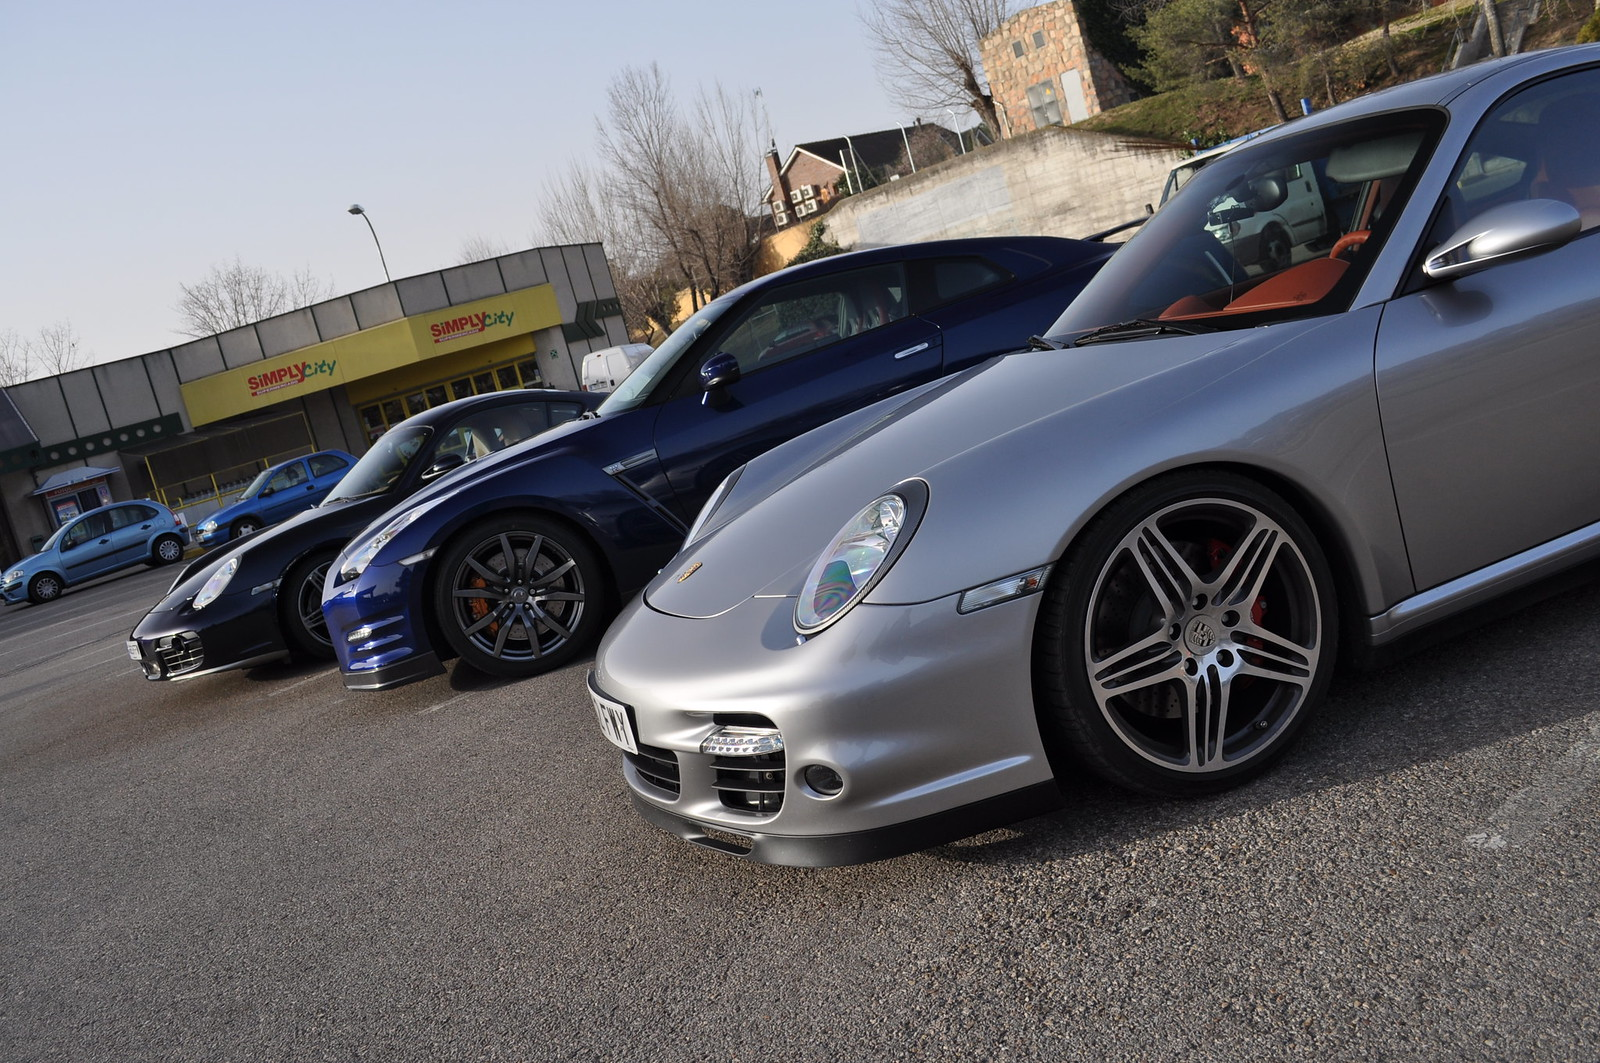 Brunch and Cars Madrid - Round 3